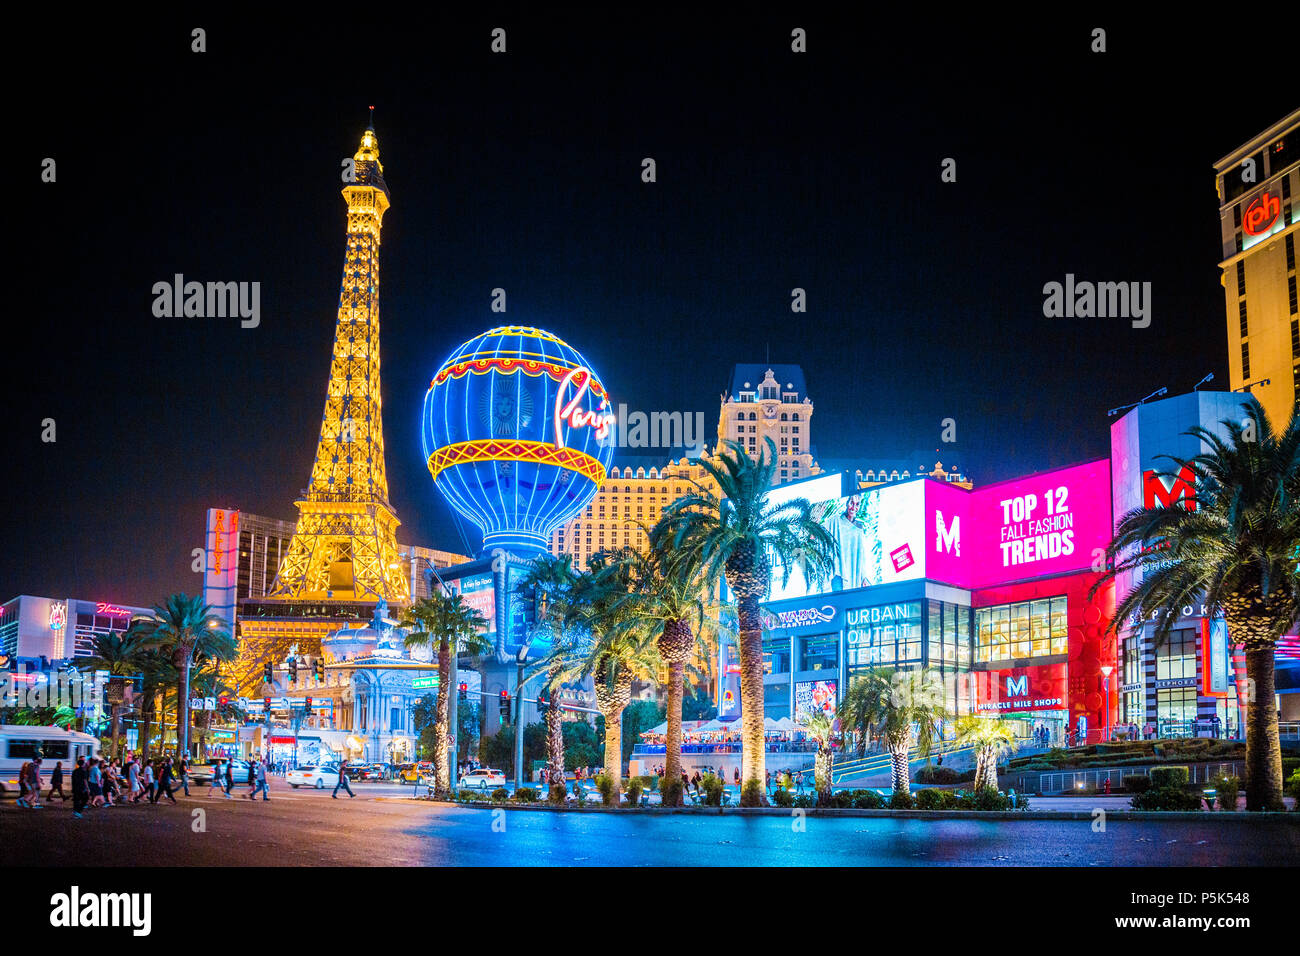 SEPTEMBER 20, 2017 - LAS VEGAS:  Classic panoramic view of colorful Downtown Las Vegas with world famous Strip and Paris Las Vegas hotel complex - Stock Image